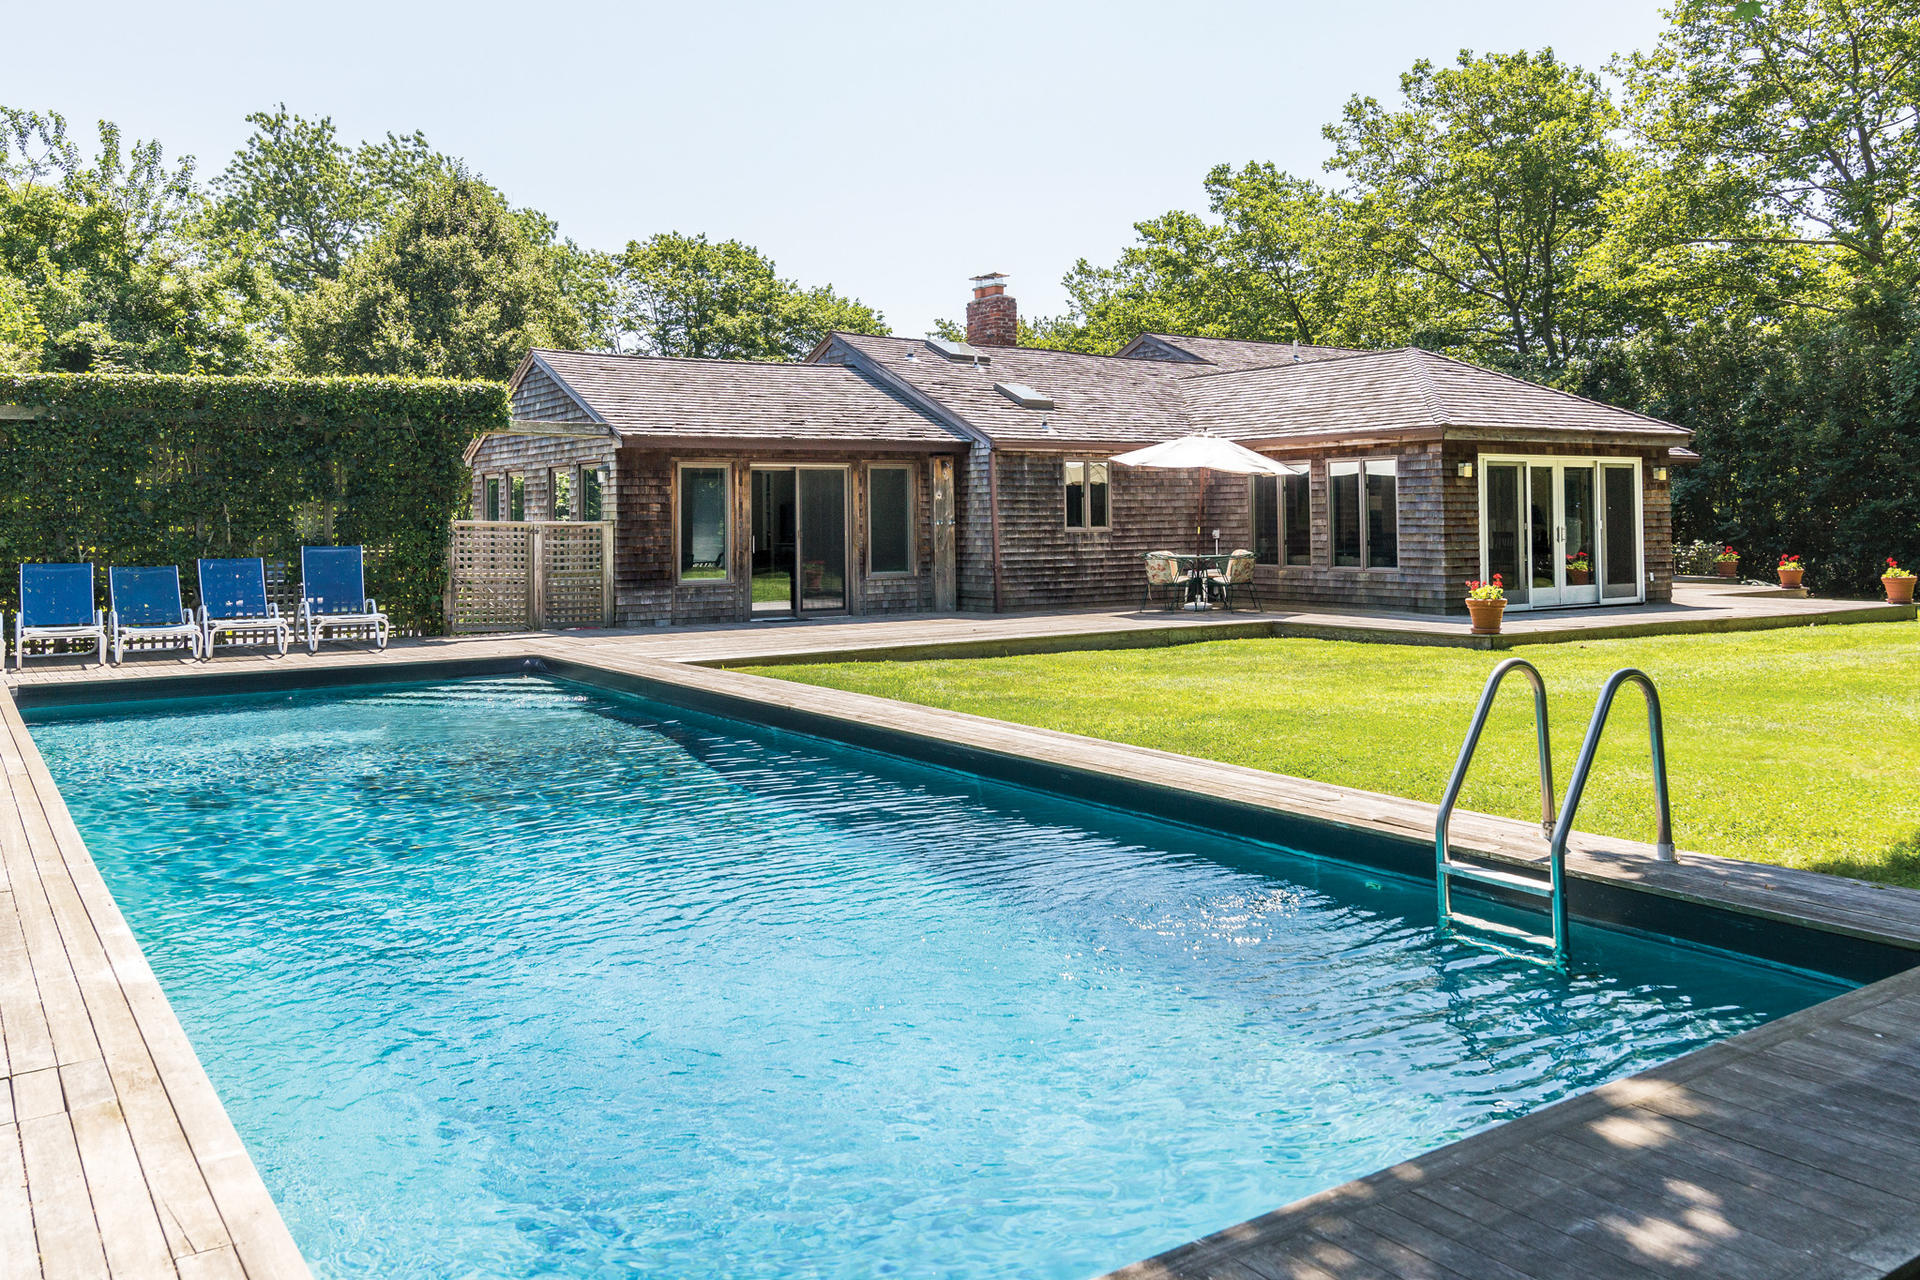 Single Family Home for Sale at South, Village, Ocean = Location, Location, Location! 242 Ocean Road, Bridgehampton, New York